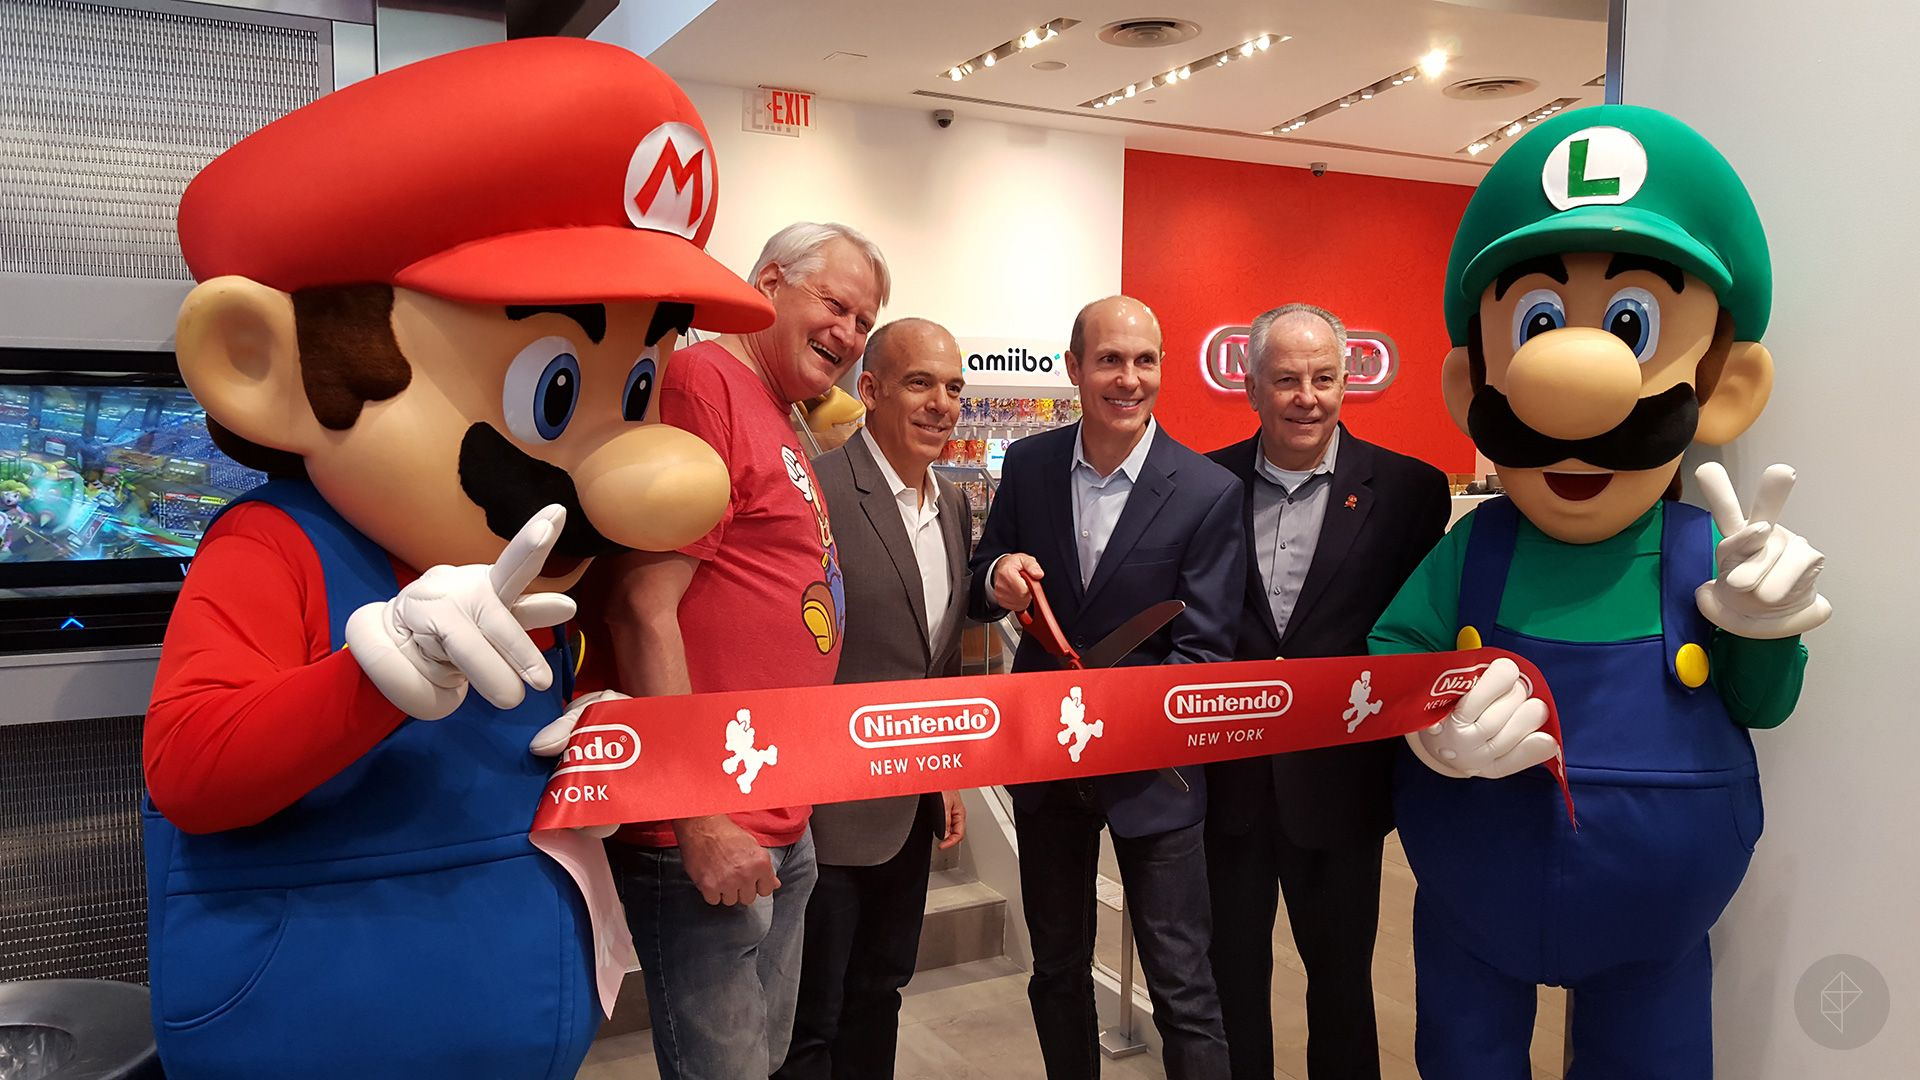 nintendo-ny-opening-photo-03_1920.0